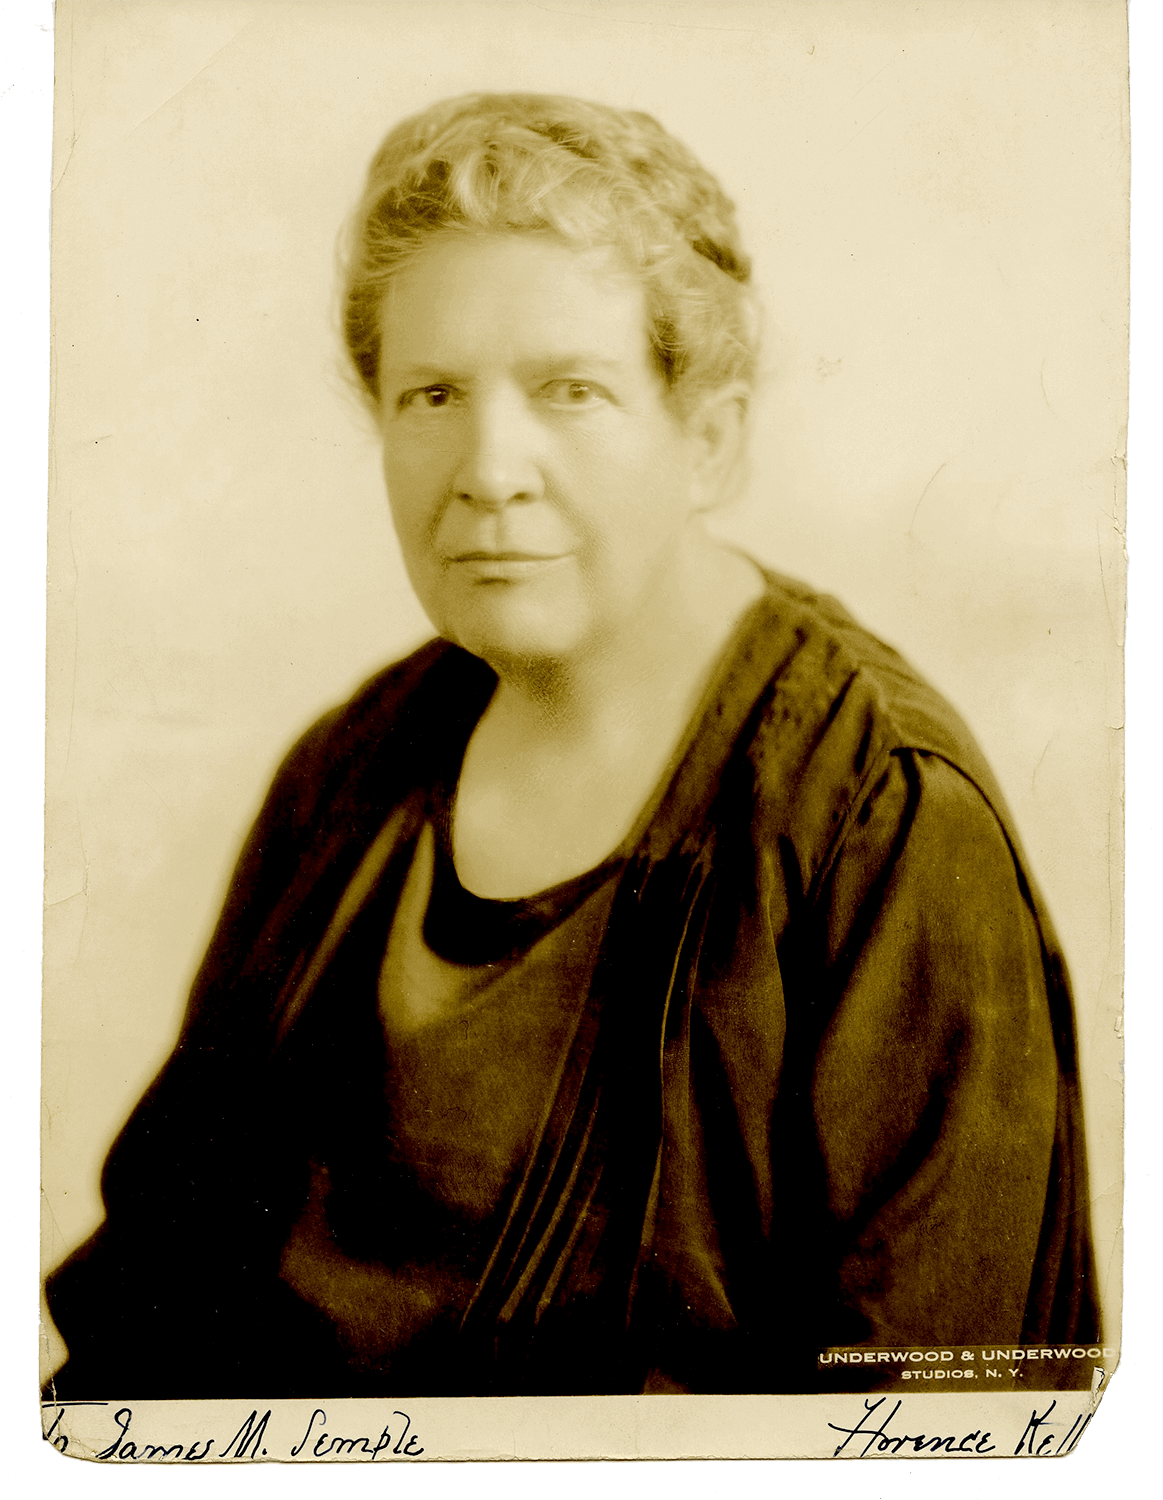 Florence Kelley (1859-1932), Social Reformer (Photo: Underwood & Underwood)